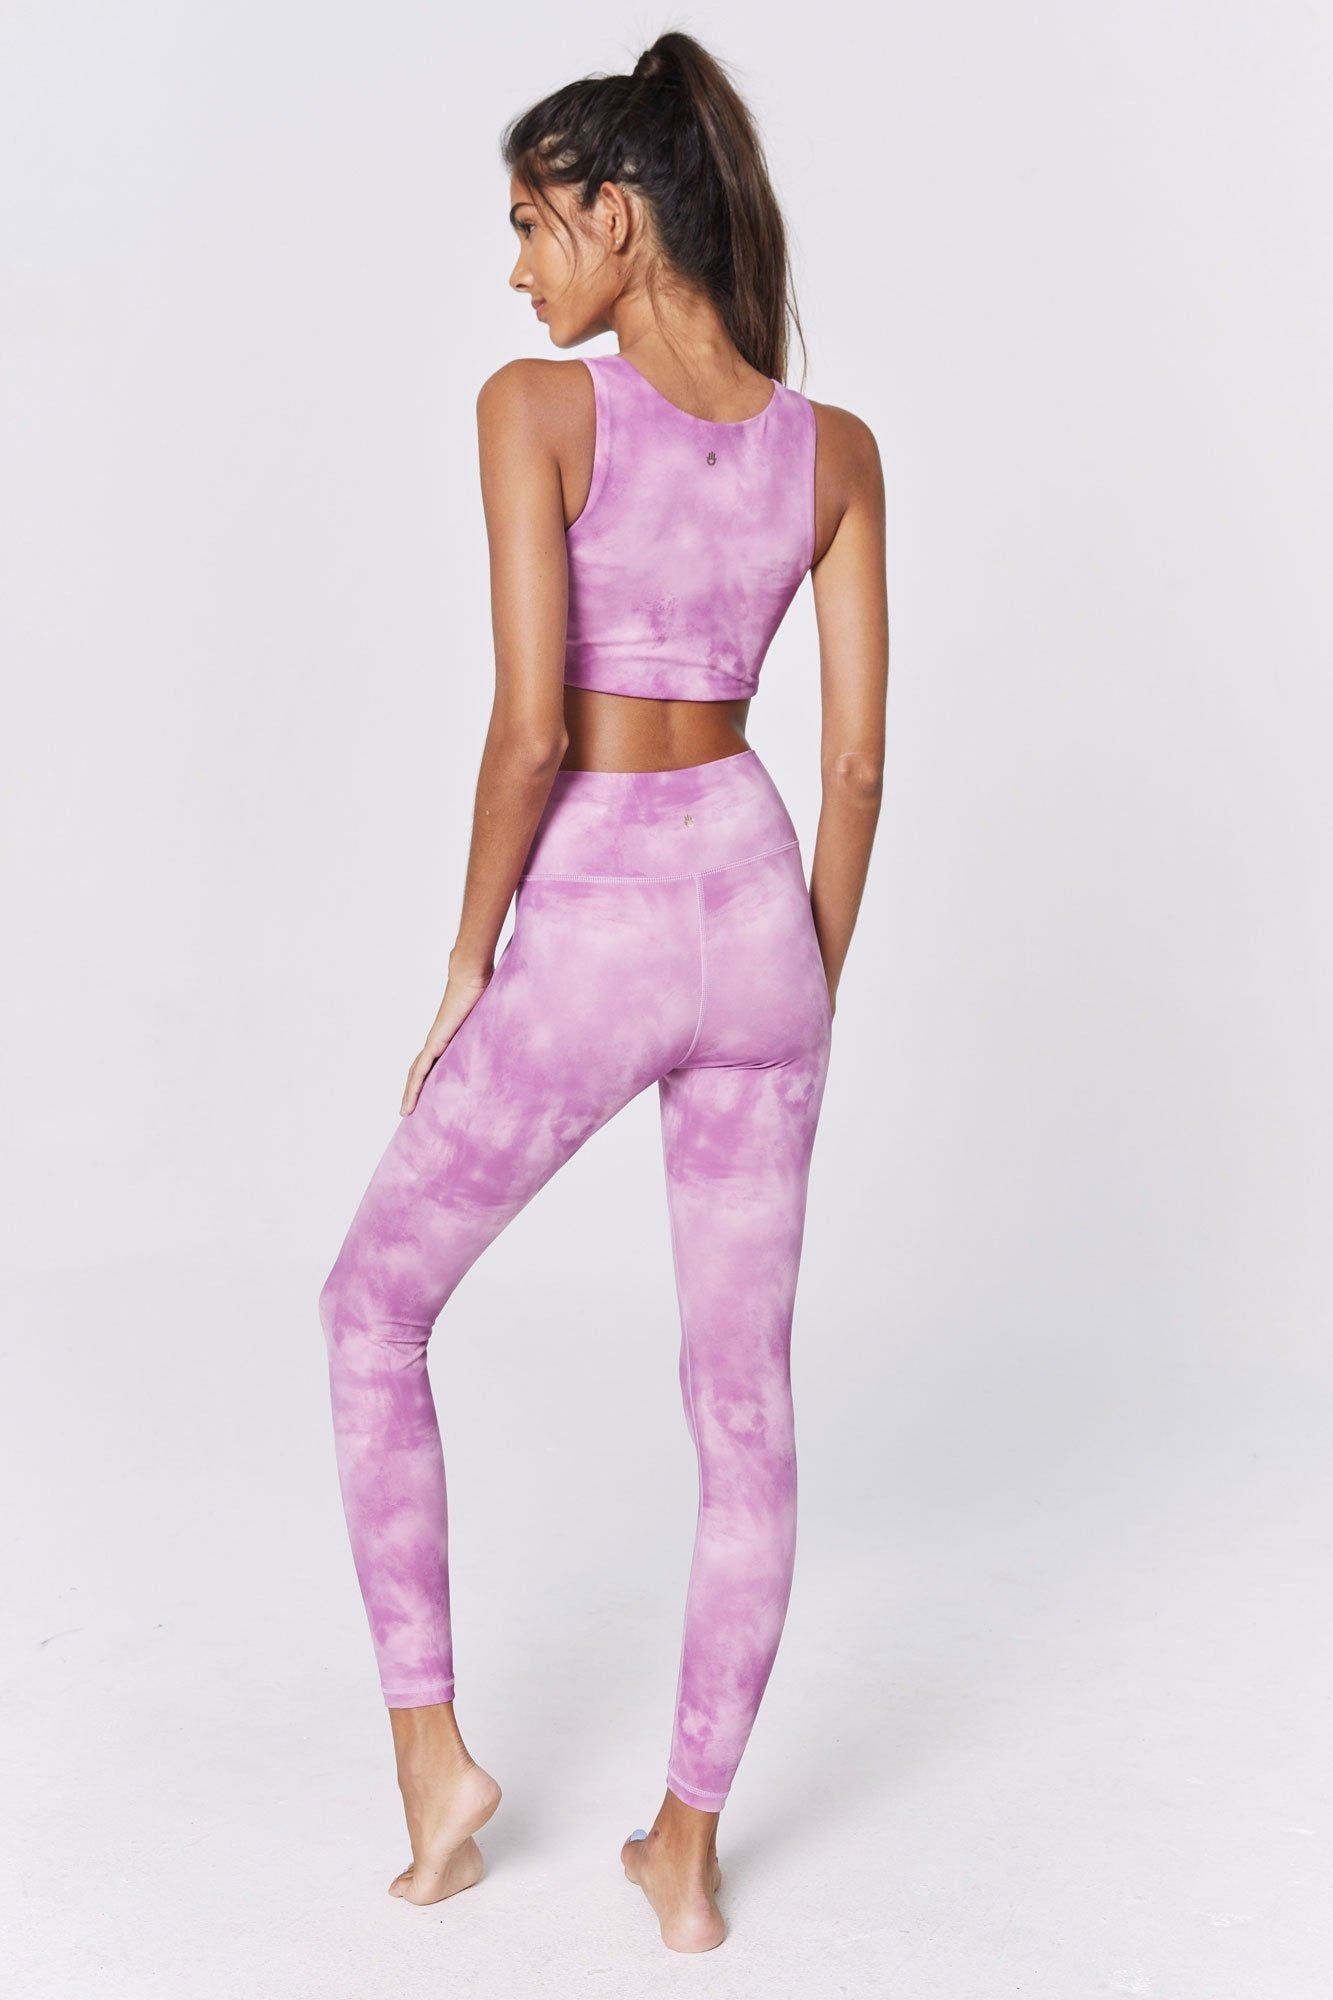 Model is wearing high-waist light and dark pink tie-dye spiritual gangster leggings. The perfect high waist 7/8 legging sunset in dye print is super high waisted and full length.